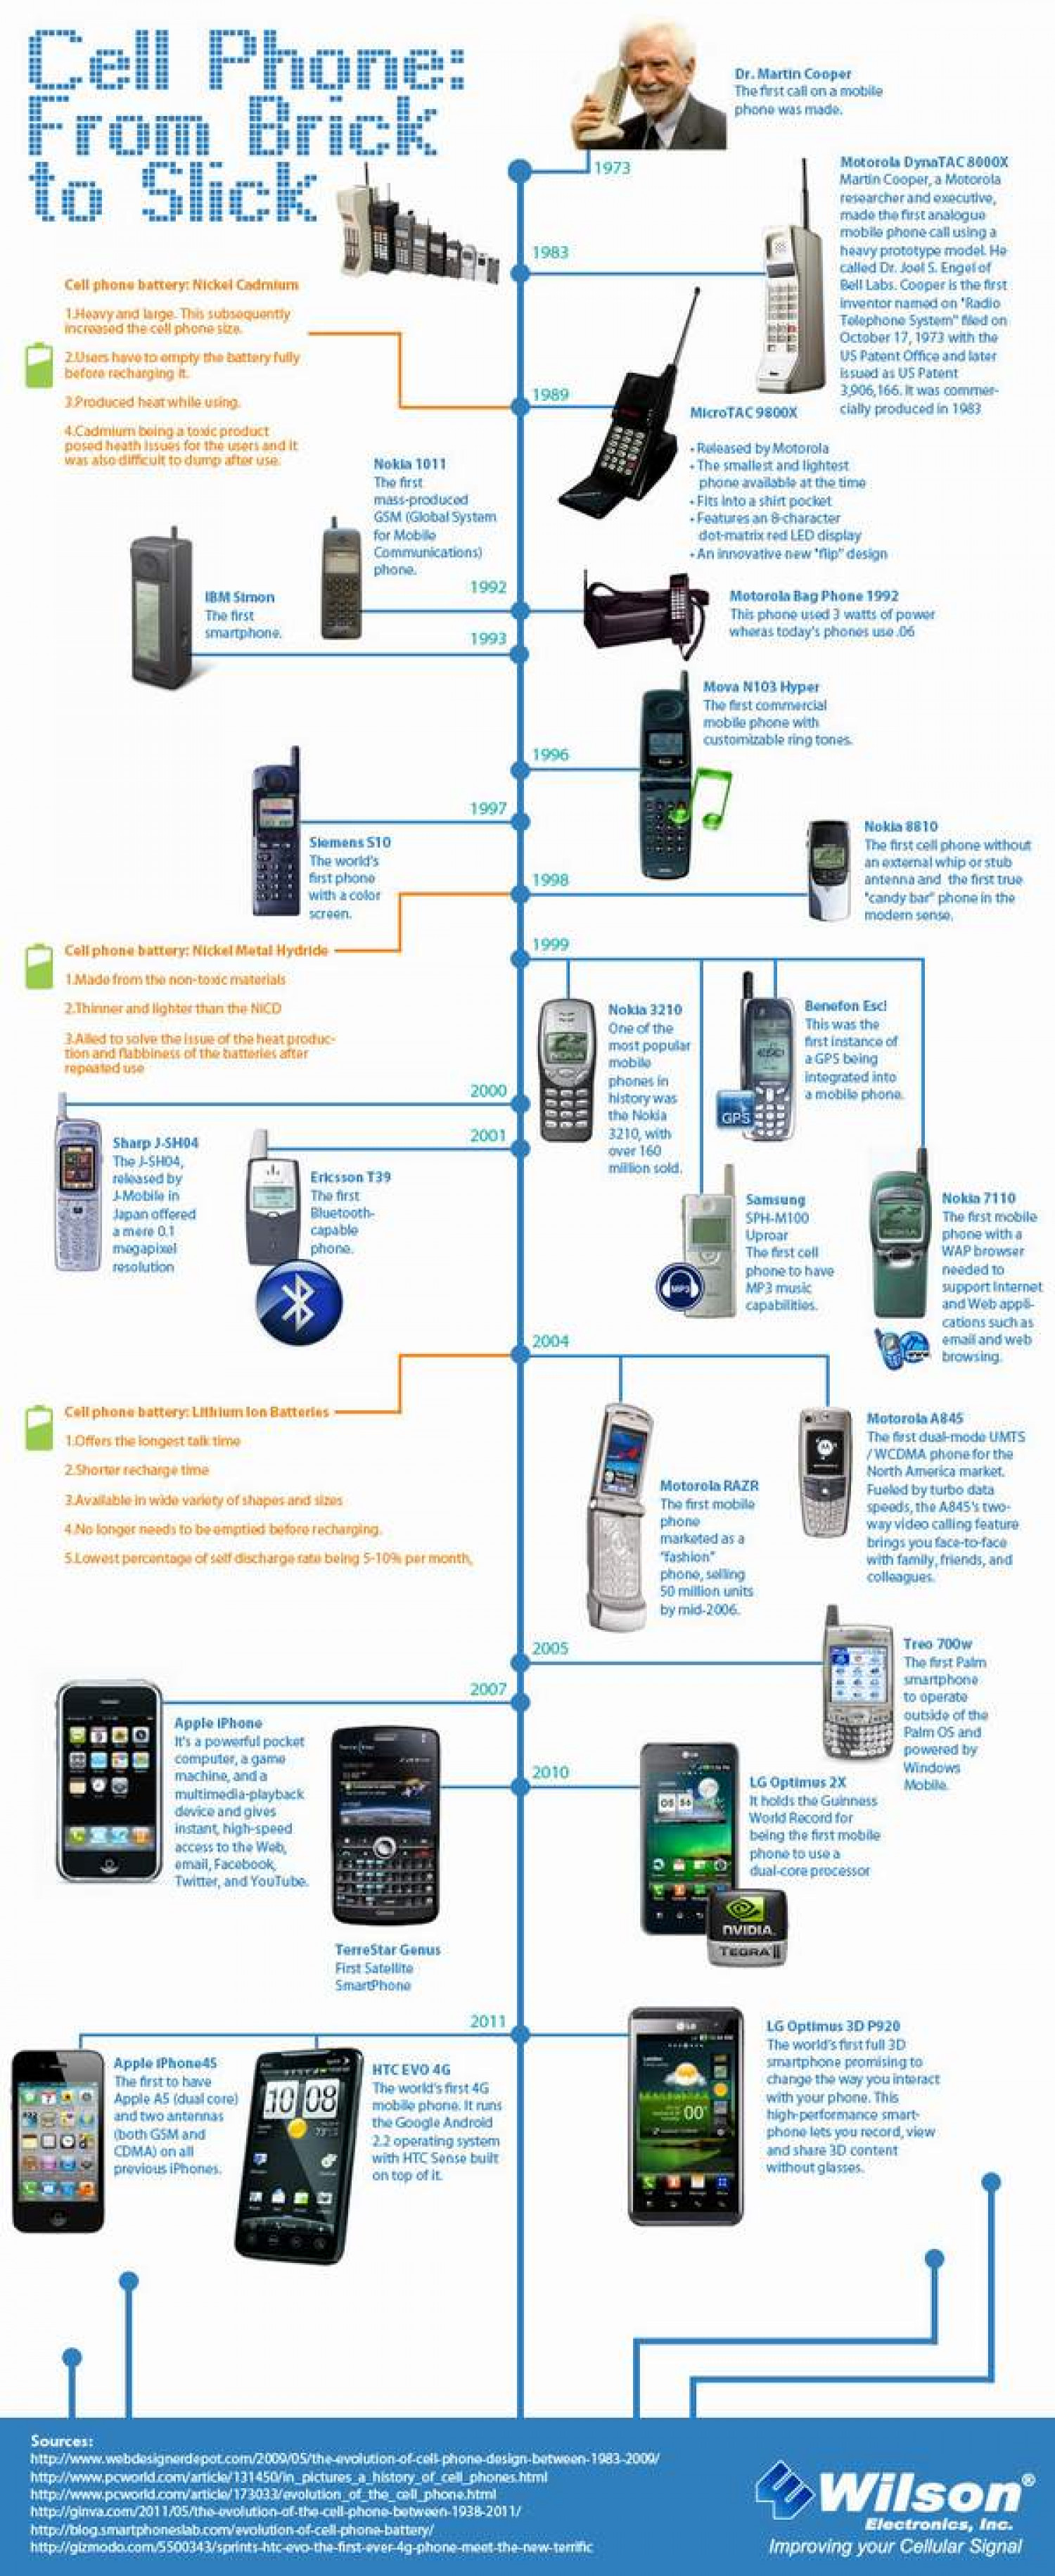 Mobile Phone Evolution Infographic